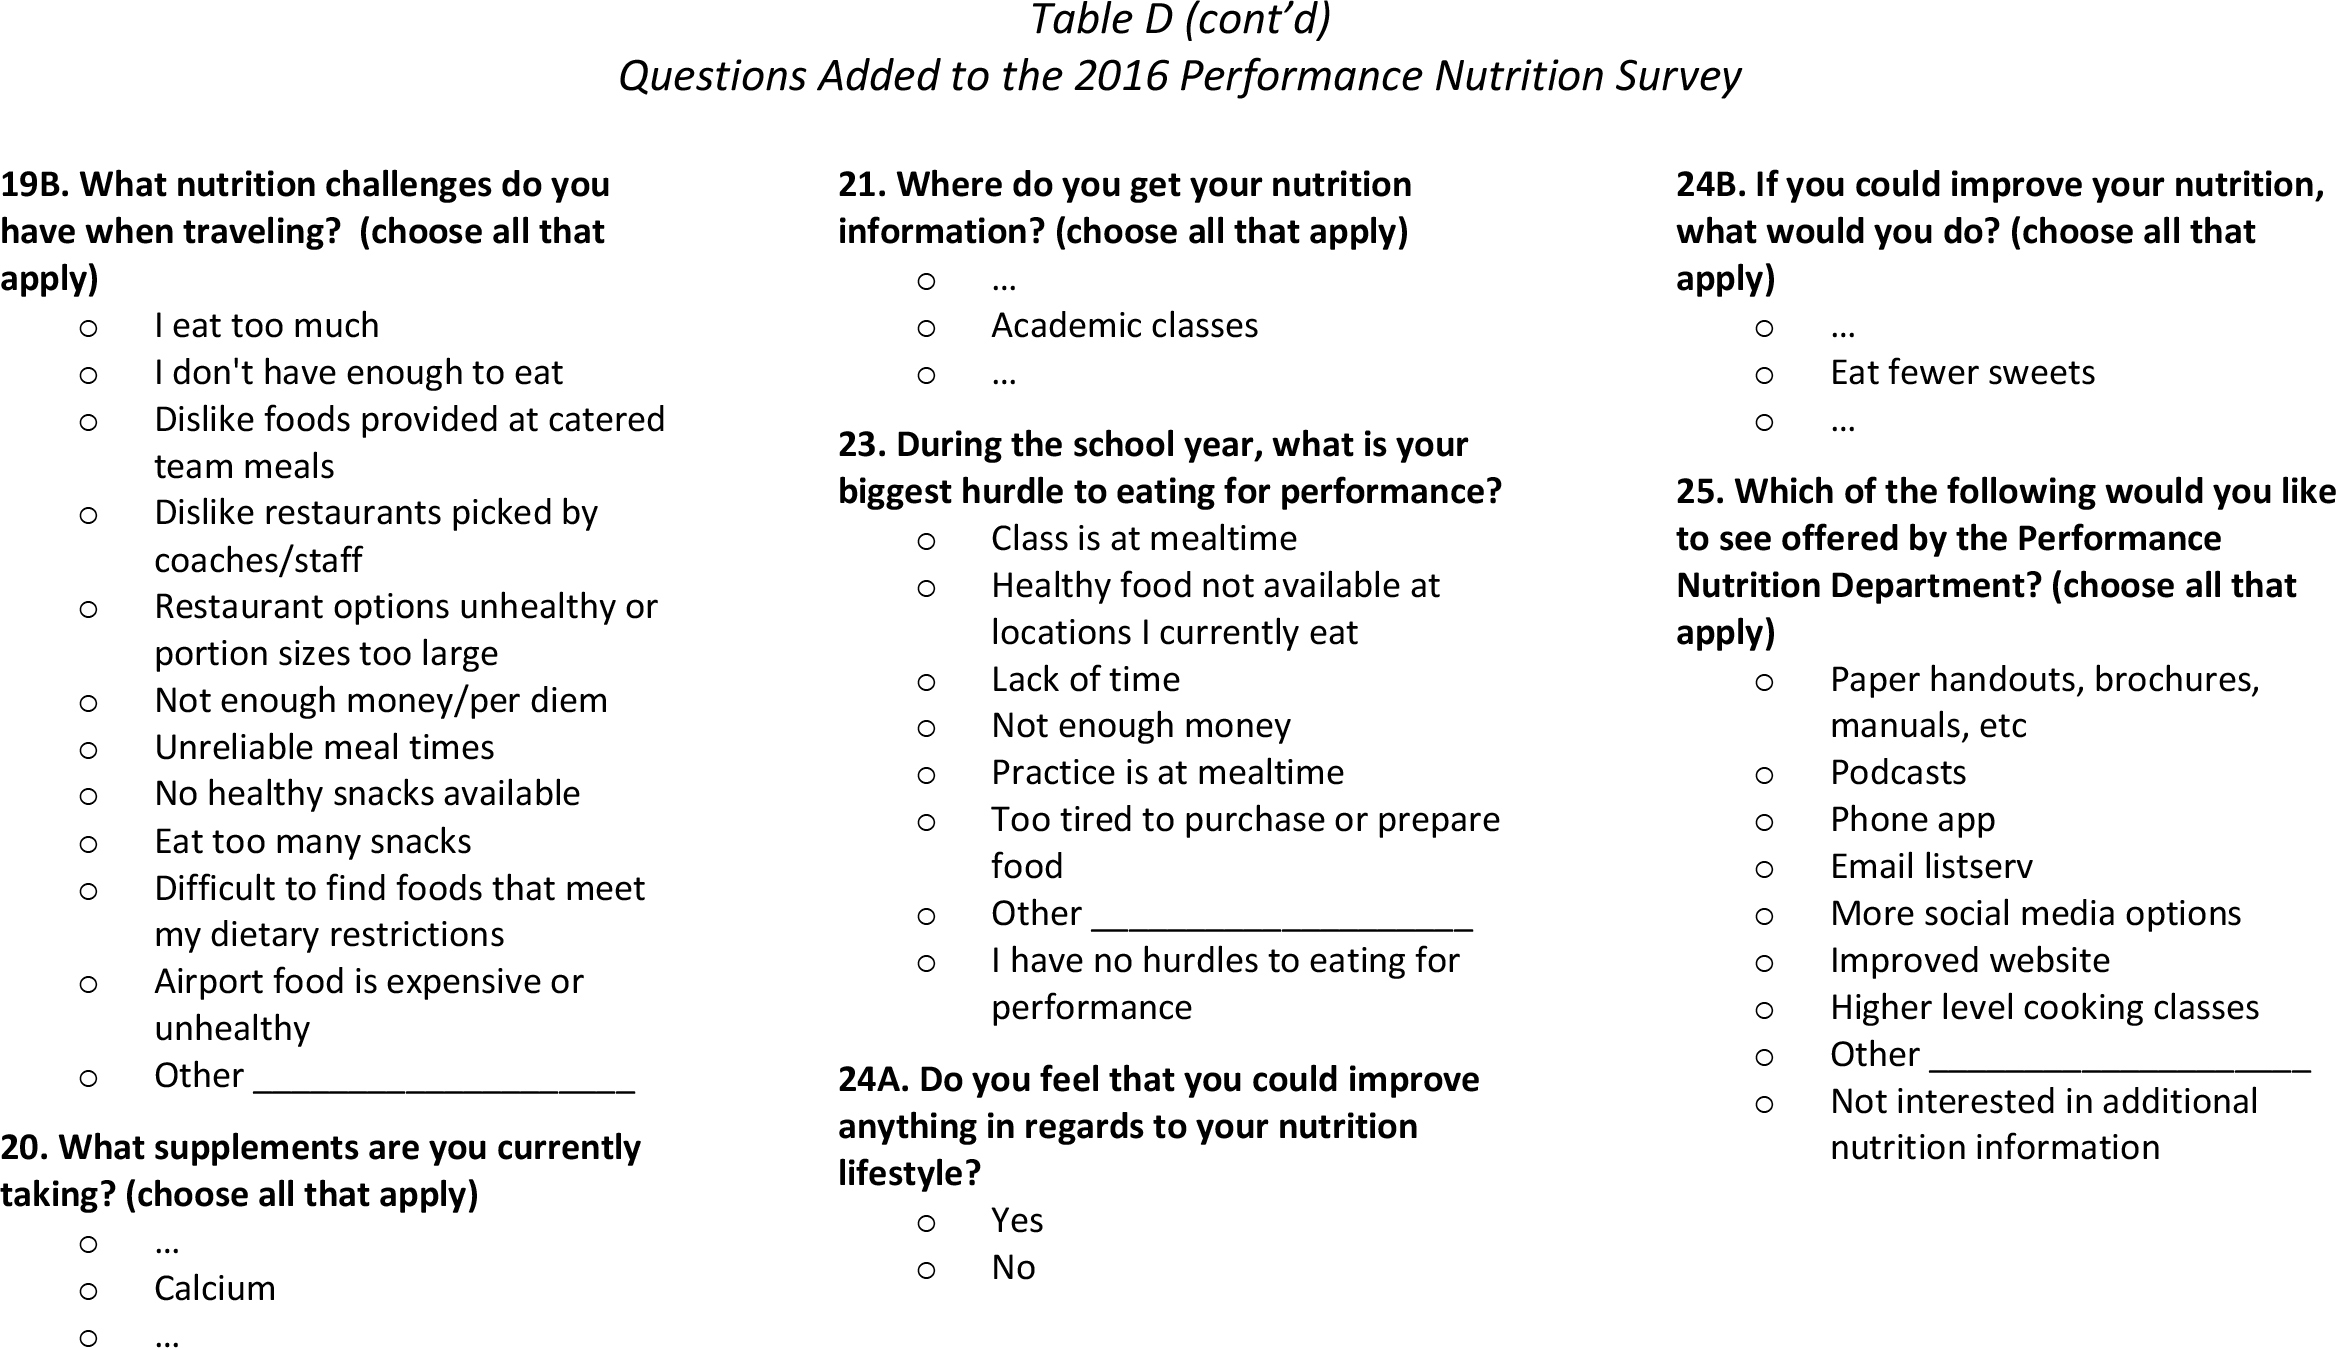 Questions Added to the 2016 Performance Nutrition Survey